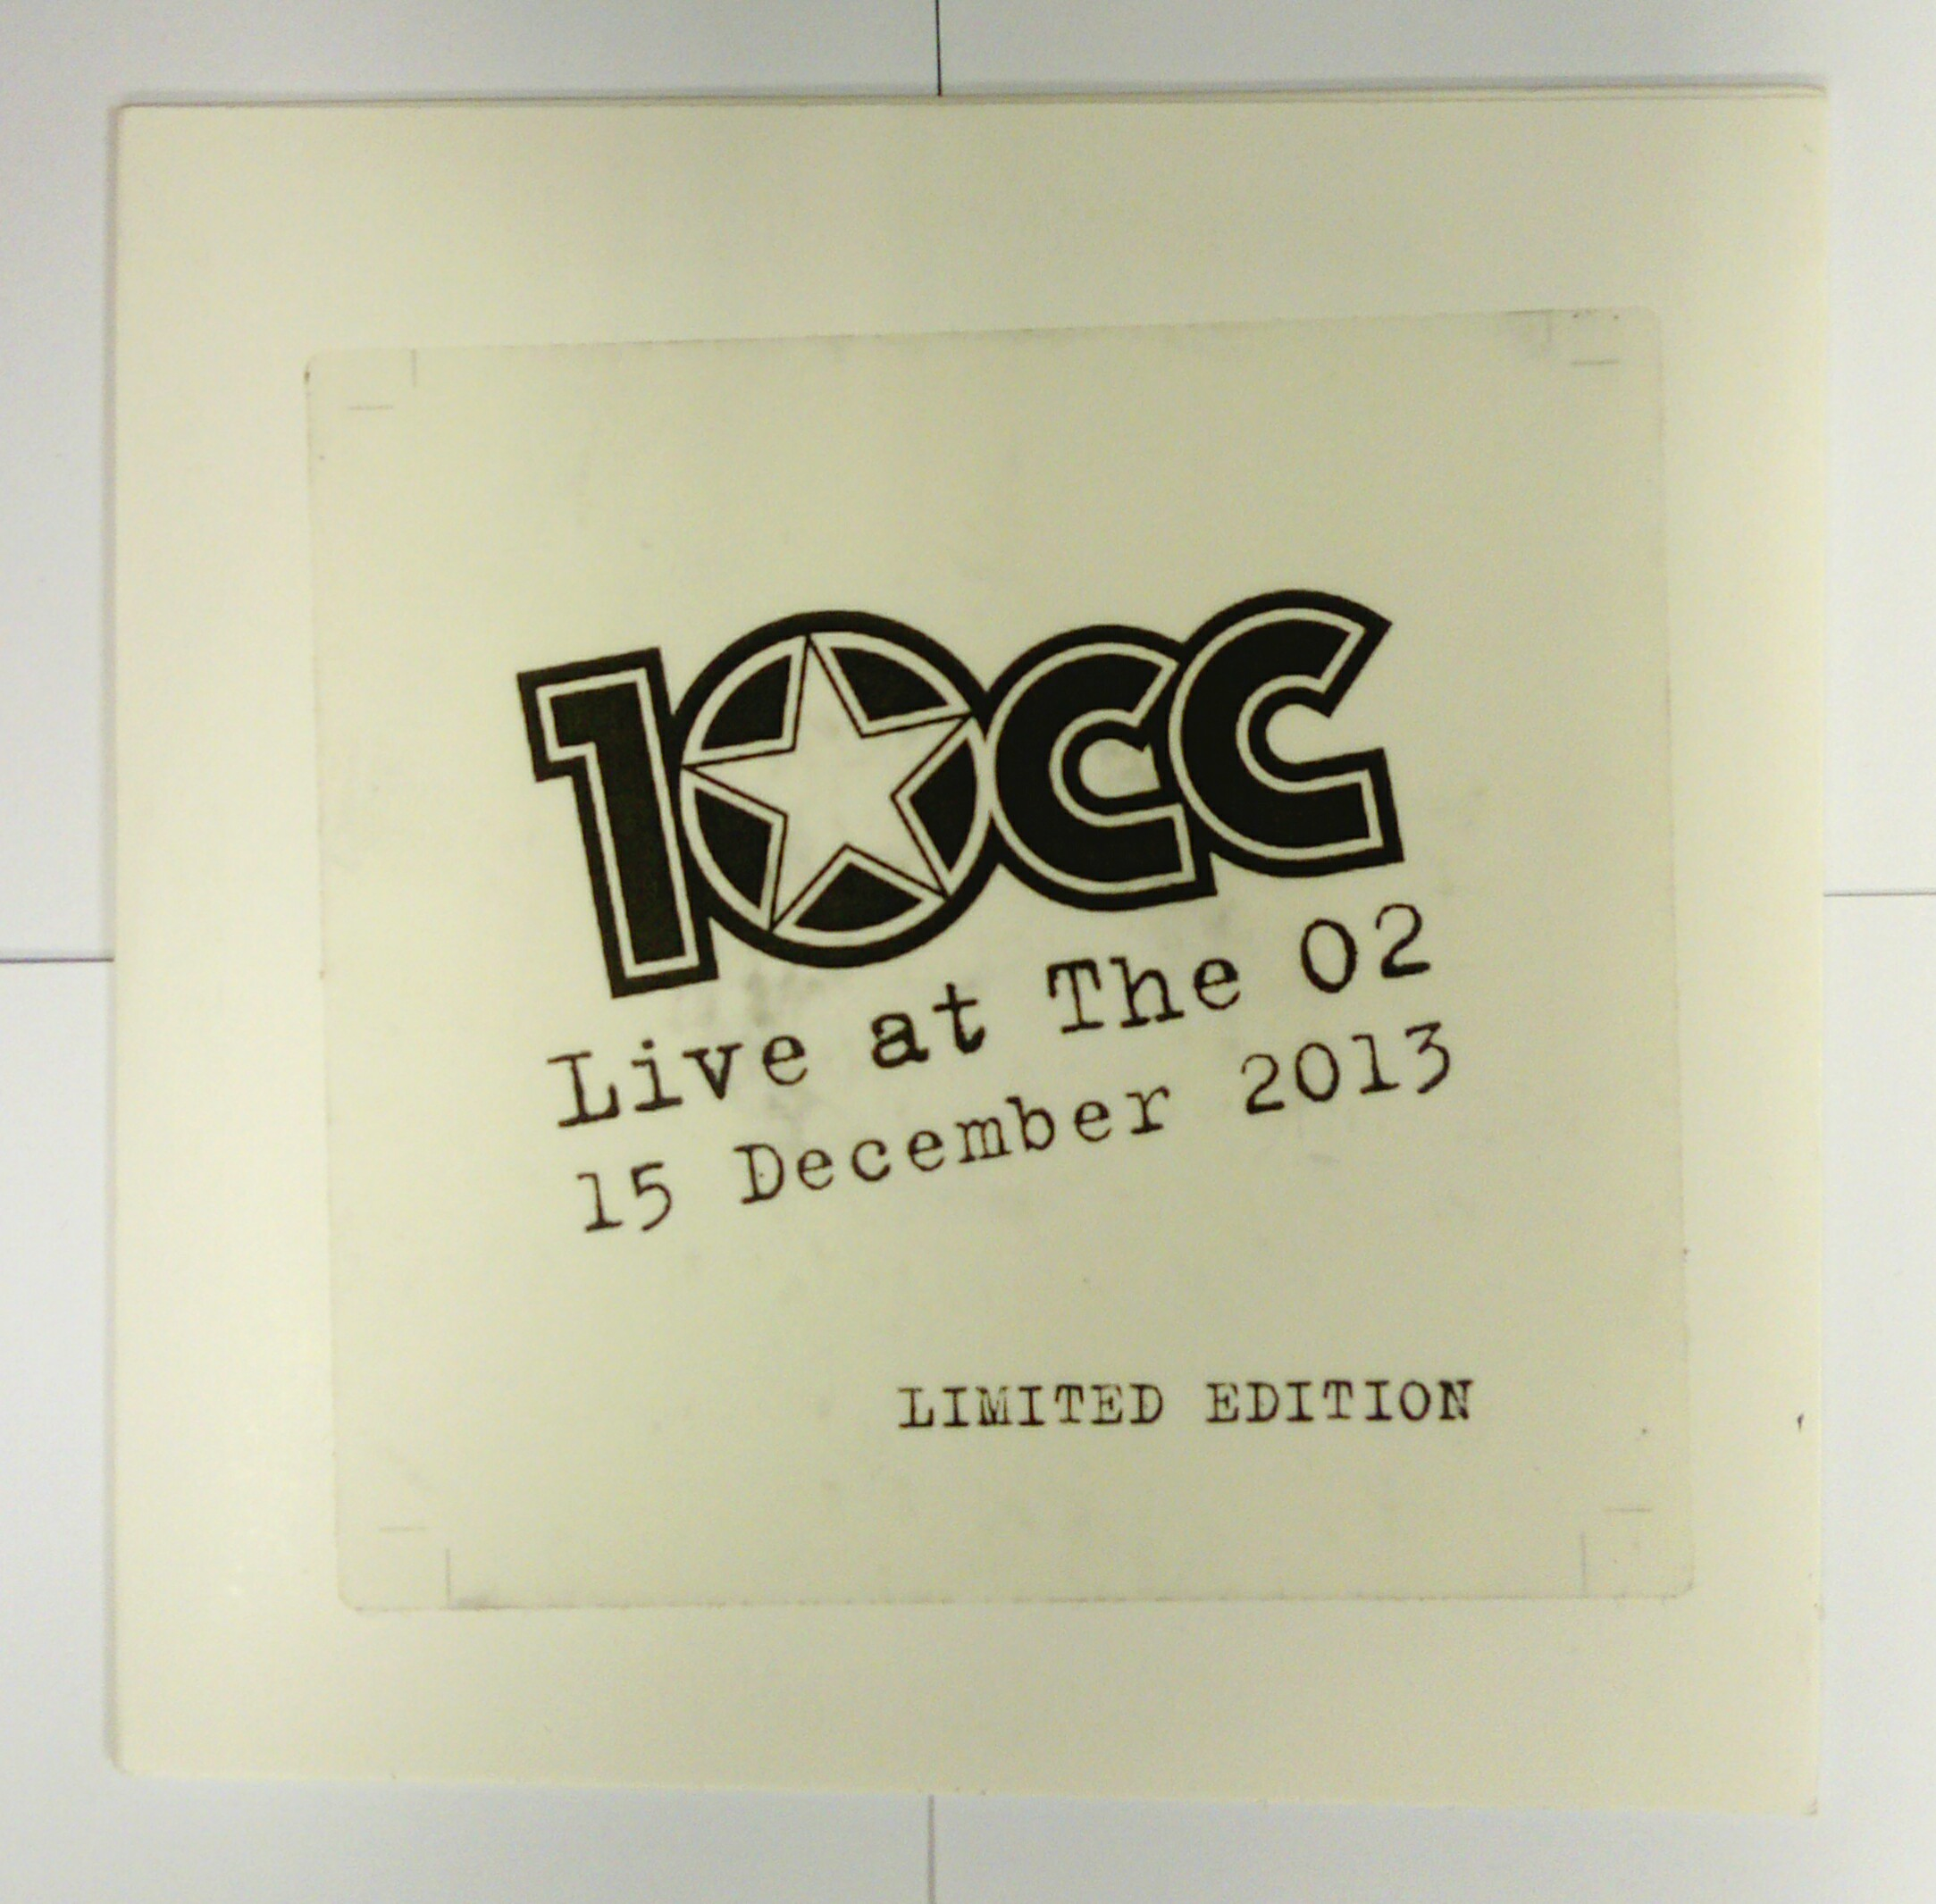 Live At The O2 15th December 2013 CD - 10CC